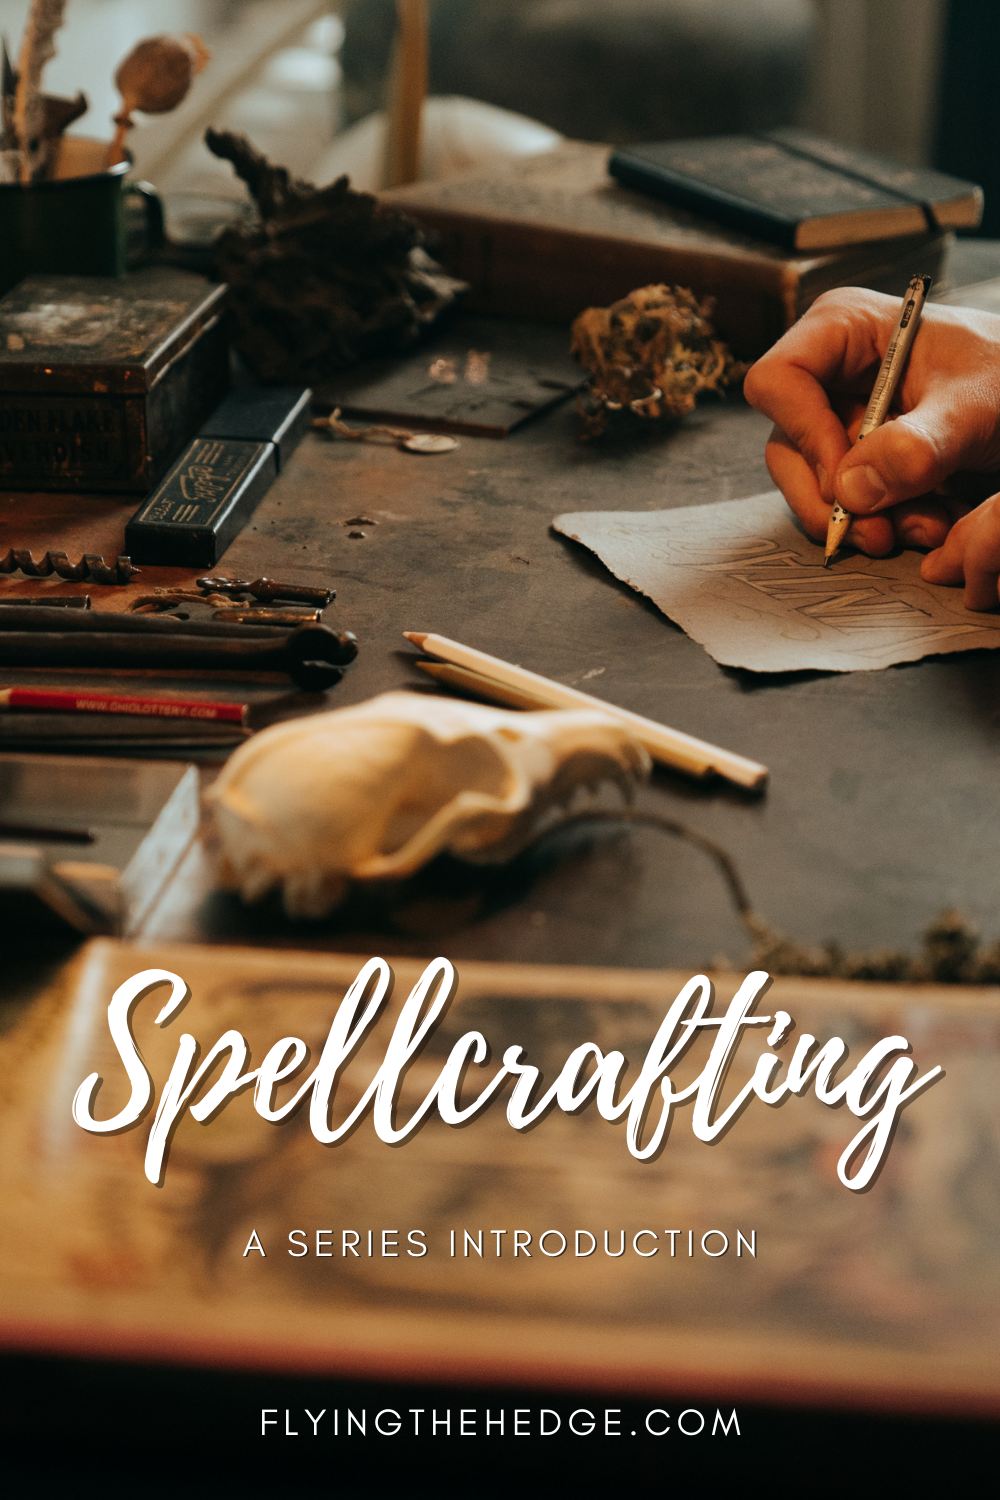 spellcrafting, spell writing, spell, ritual, witchcraft, witch, witchy, hedgewitch, pagan, neopagan, occut, wicca, wiccan